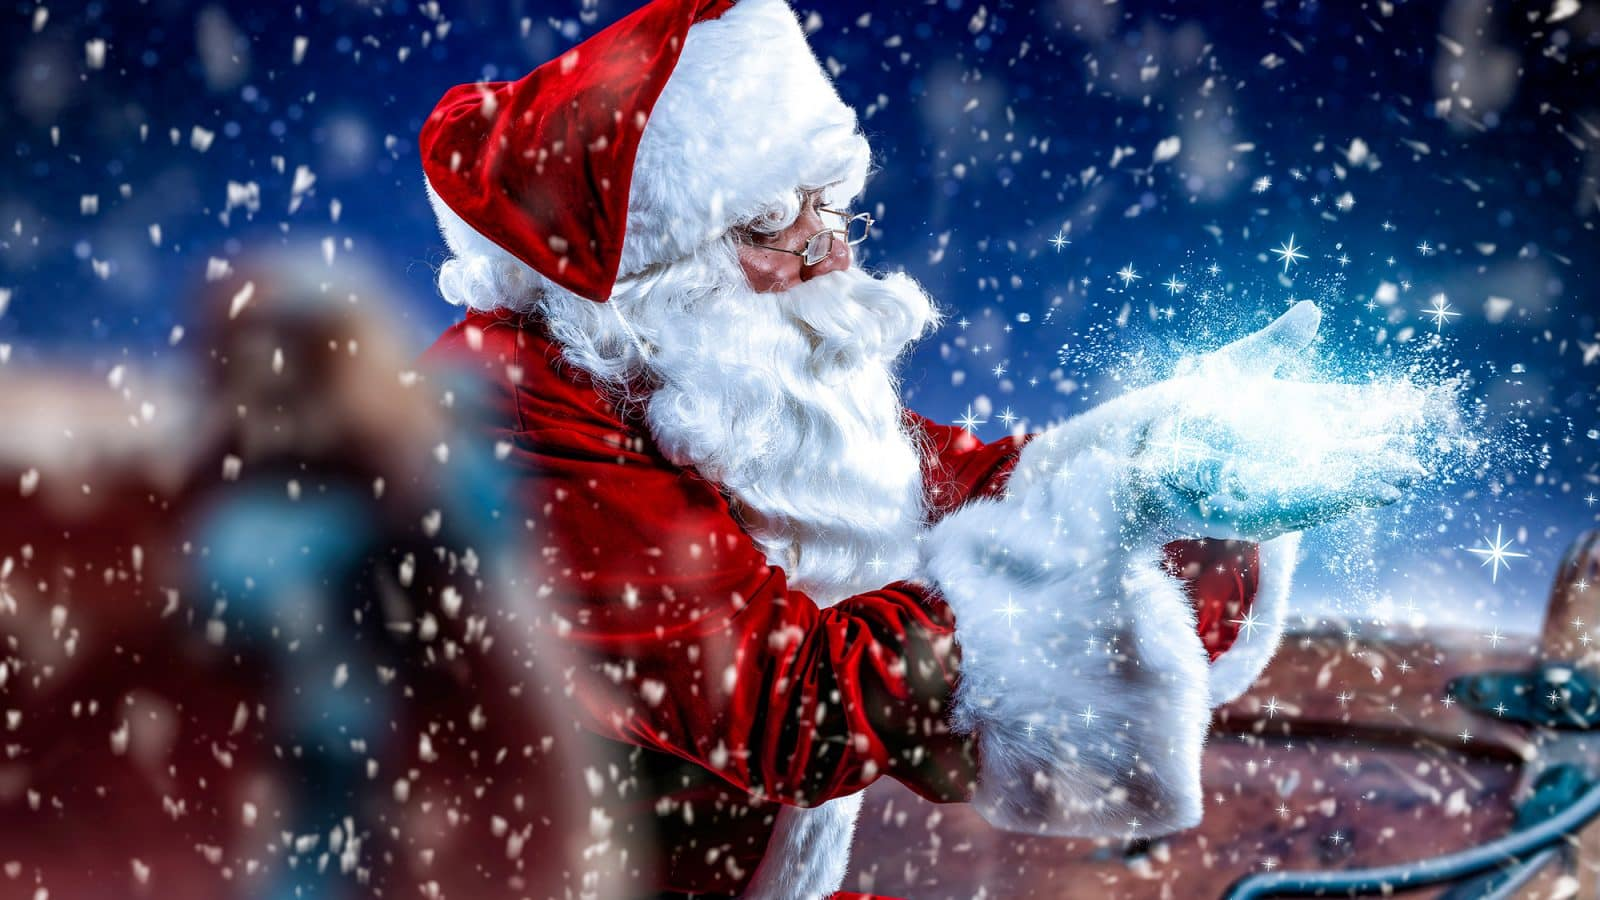 The Story of St. Nicholas, Santa Claus and Father Christmas